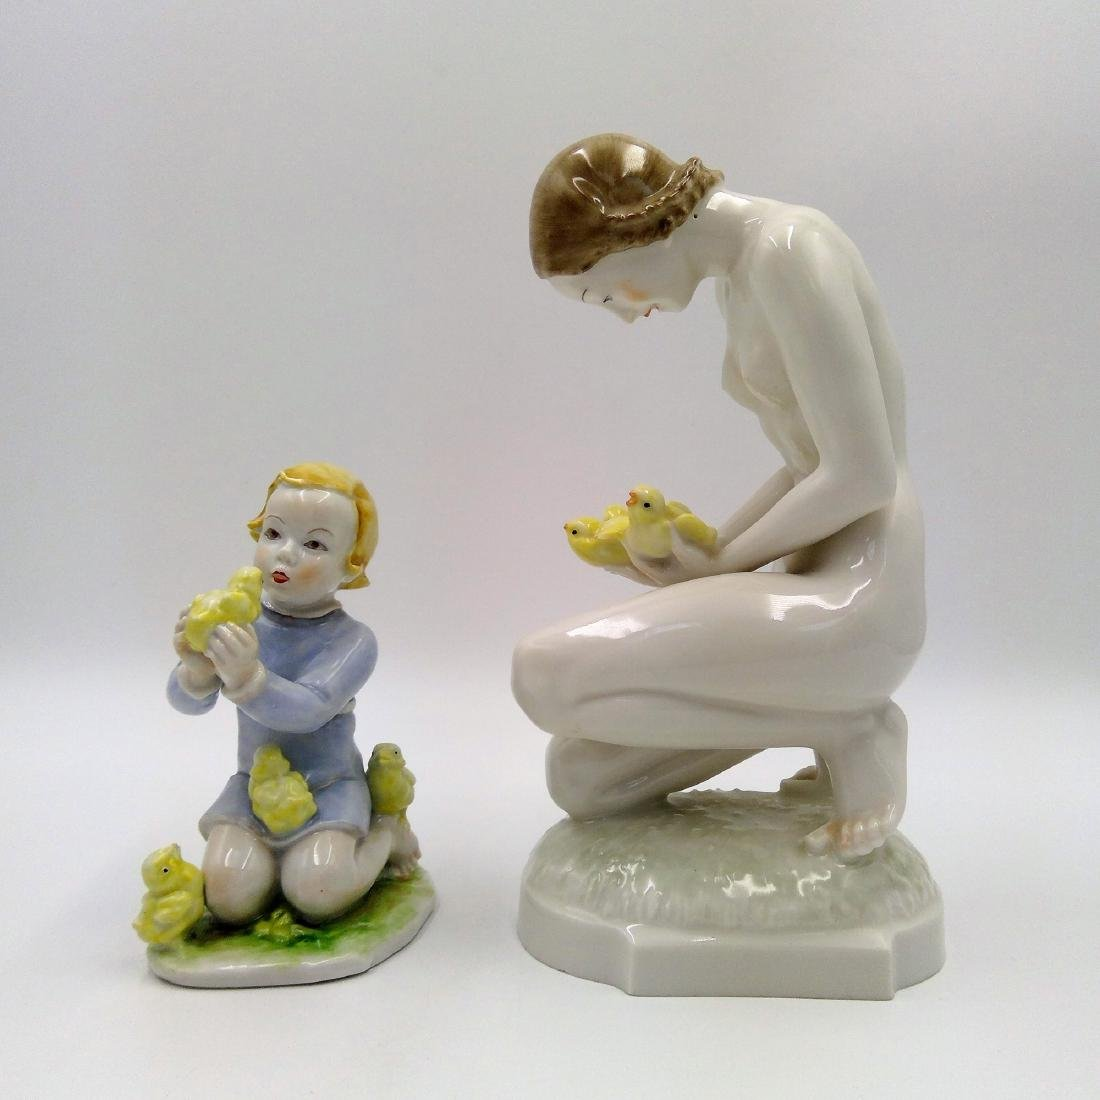 GROUP OF 2 ROSENTHAL & HUTSCHENREUTHER FIGURINES